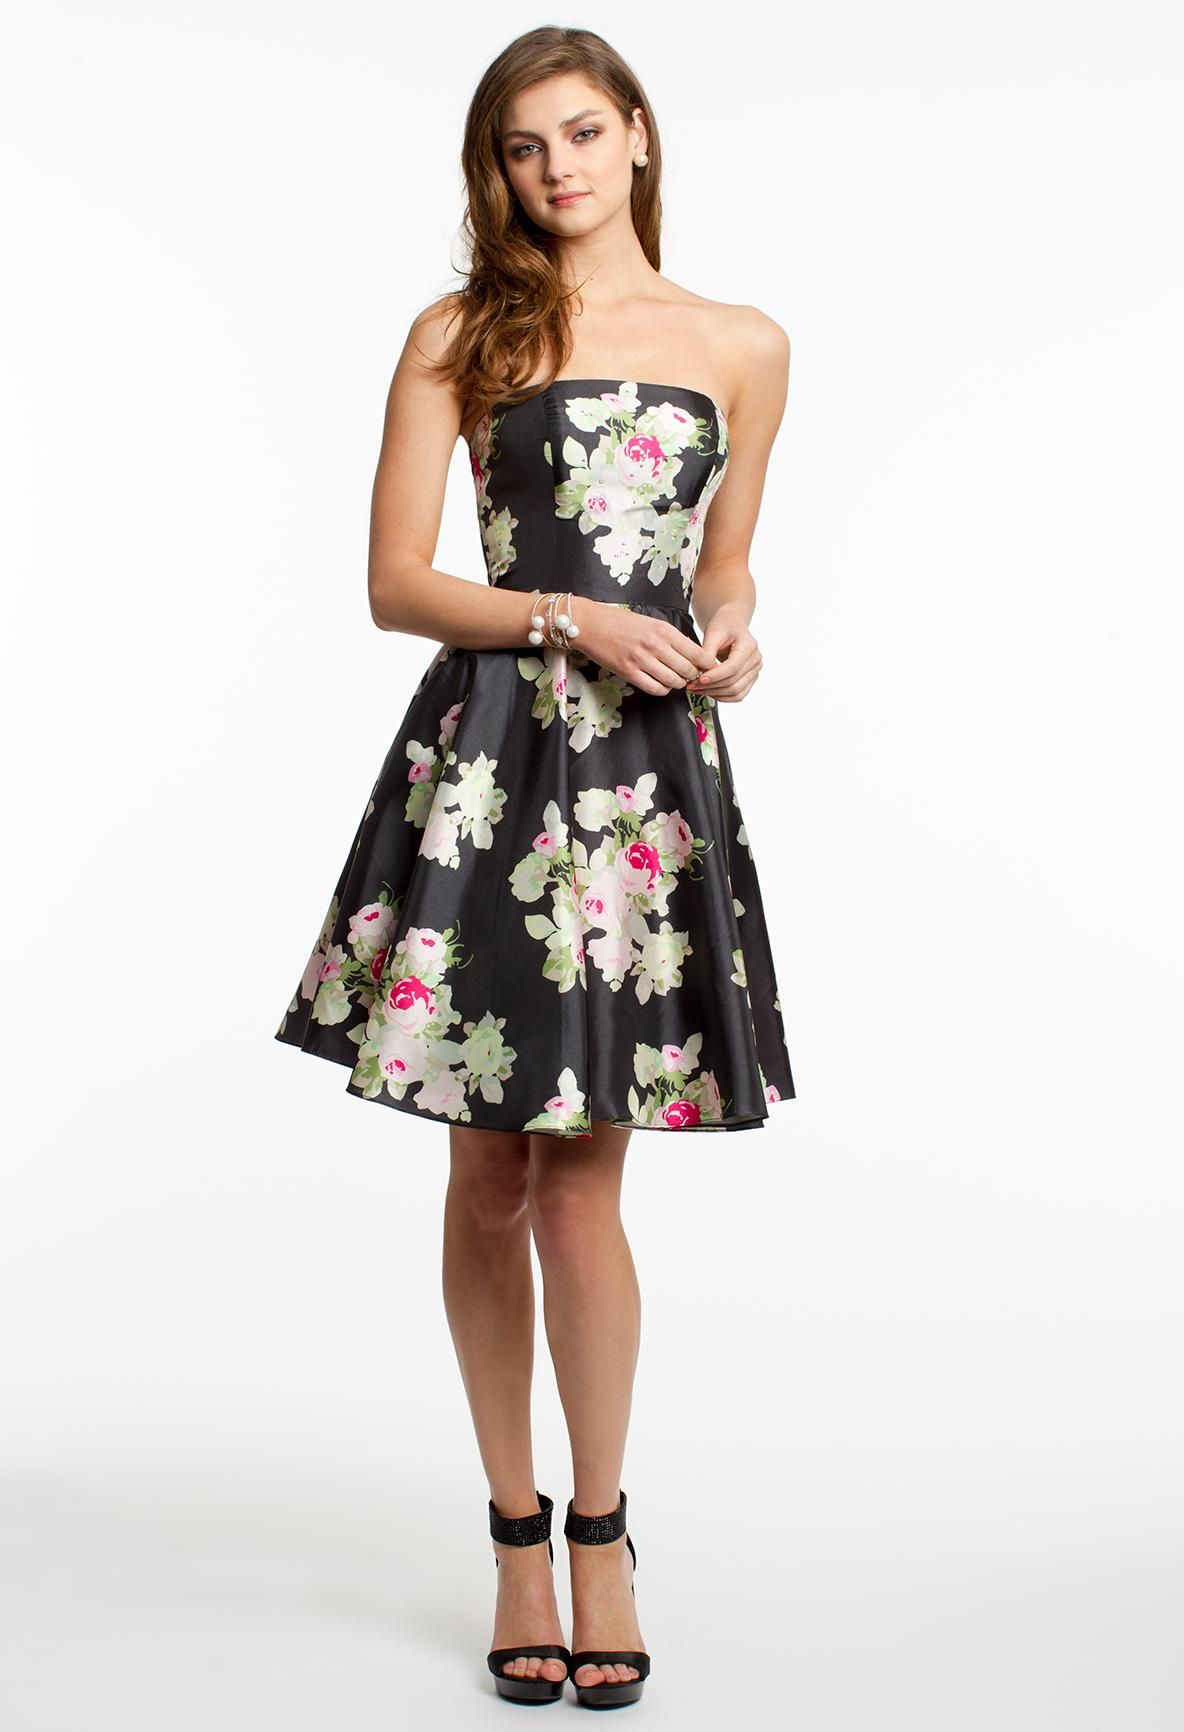 Floral print short party dress camillelavie clvprom trend report